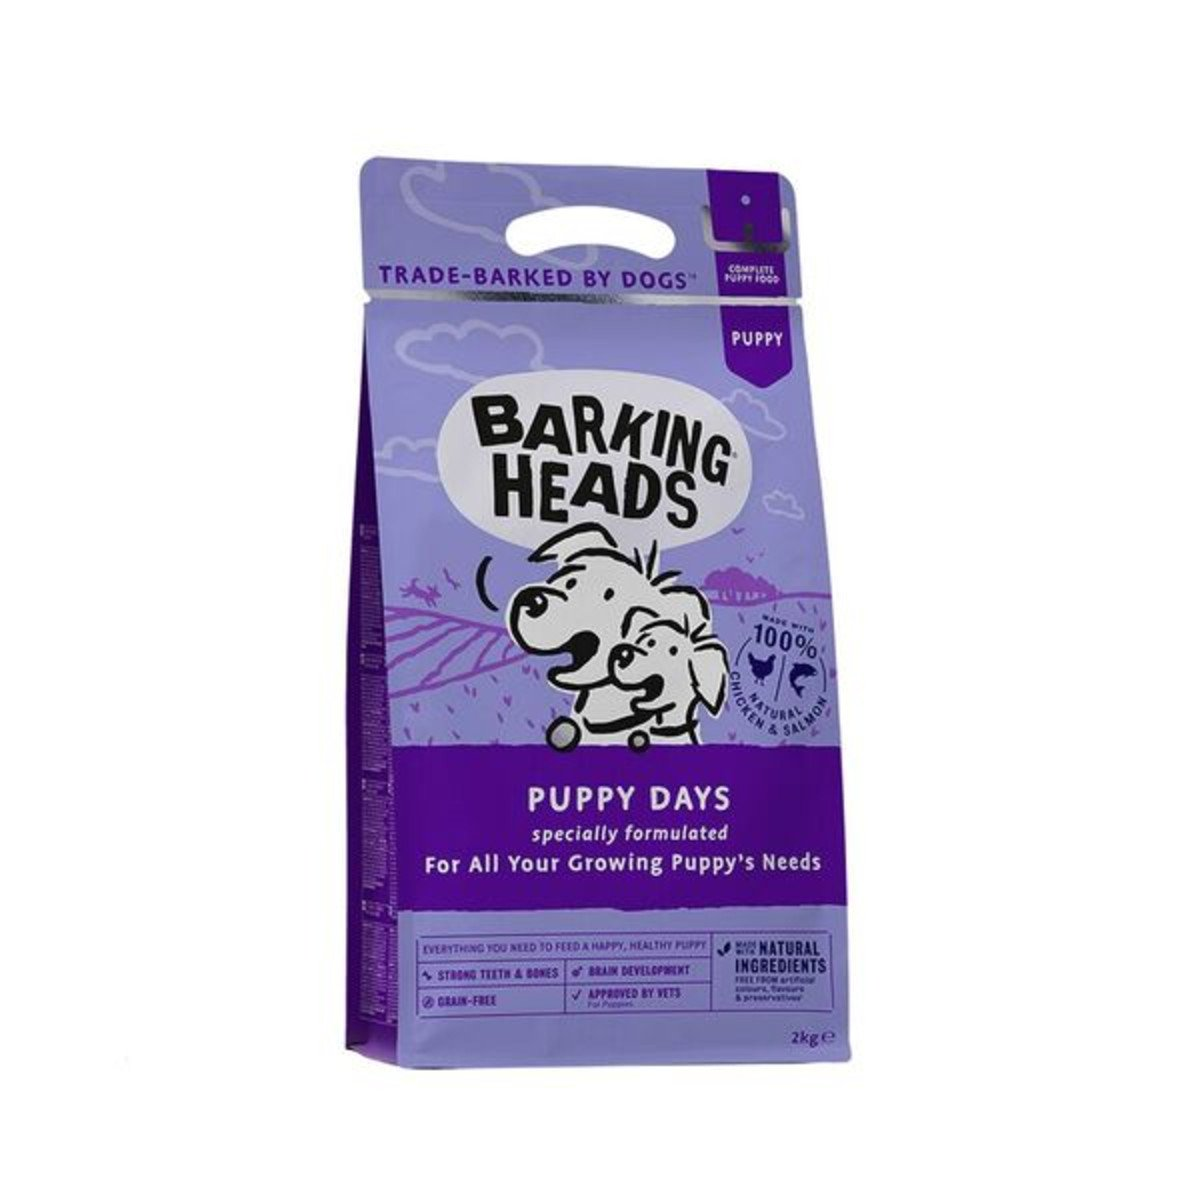 Barking Heads Puppy Days Salmon and Chicken Dry Dog Food